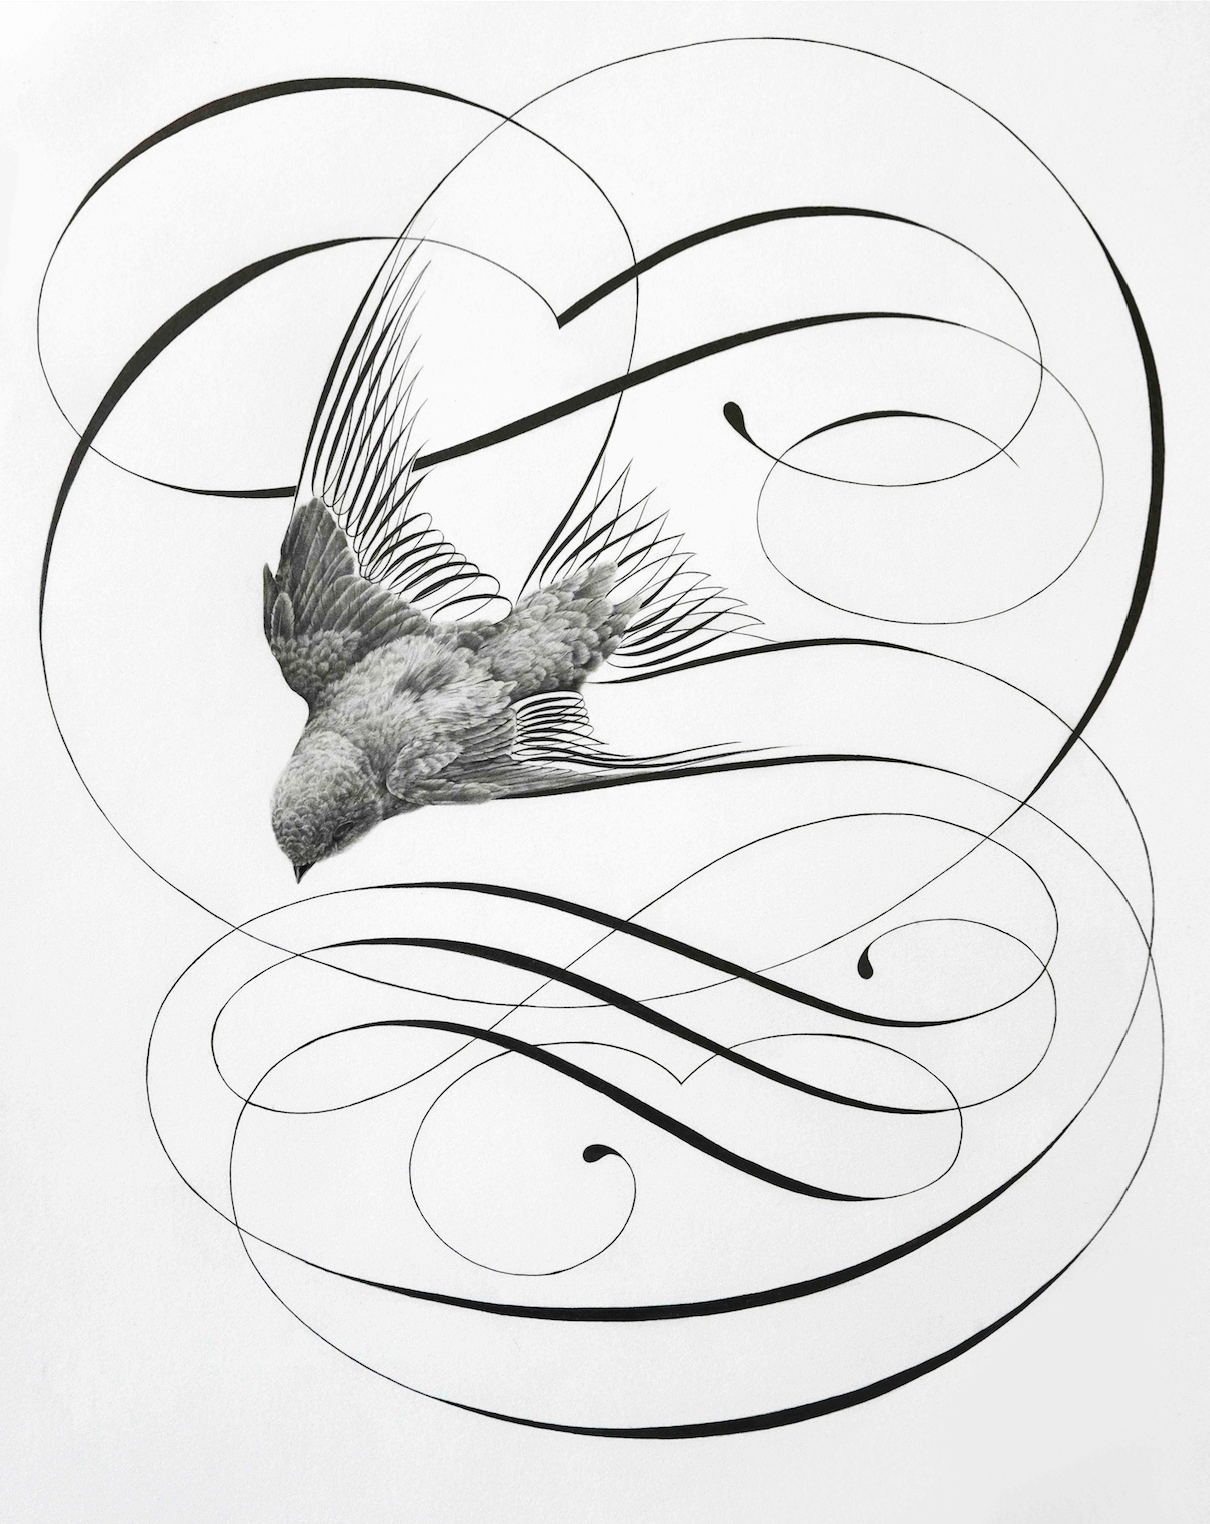 1210x1524 Flight Of Fancy Jake Weidmann Artist And Master Penman